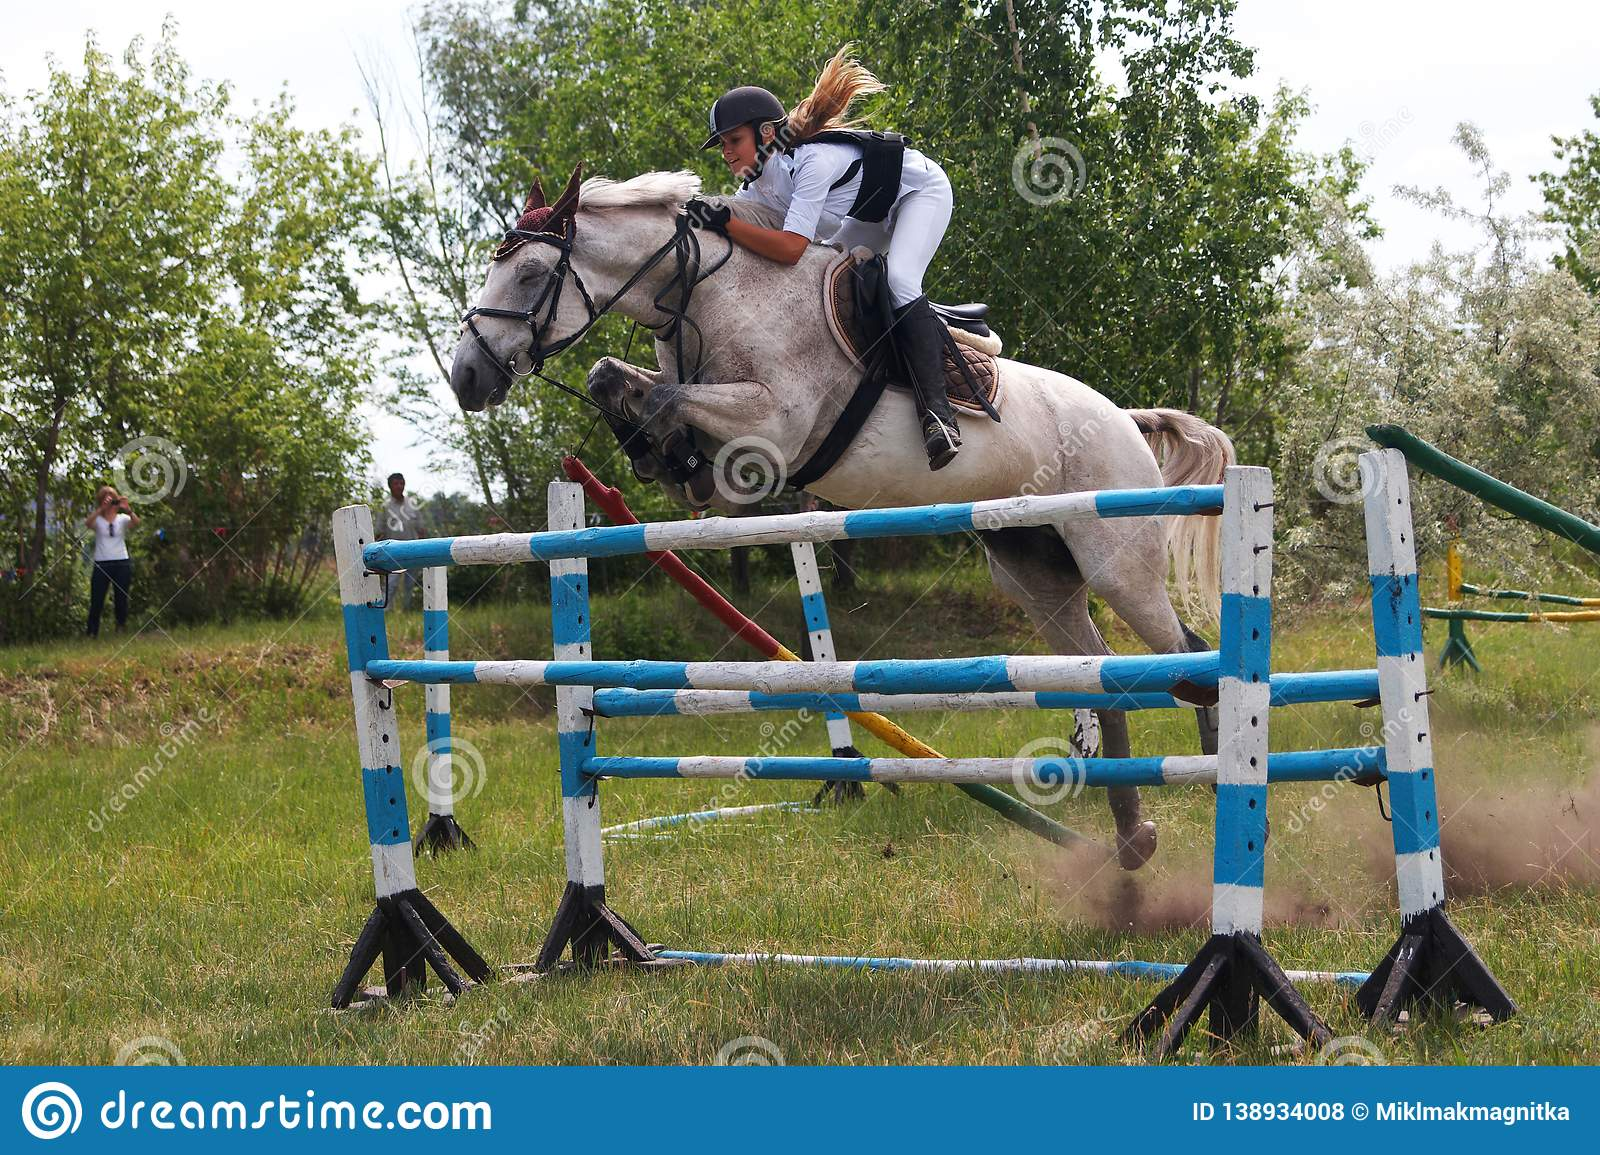 Russia, Magnitogorsk, - June, 14, 2014. A rider on a horse jumps over a high barrier during a performance at Sabantuy - the